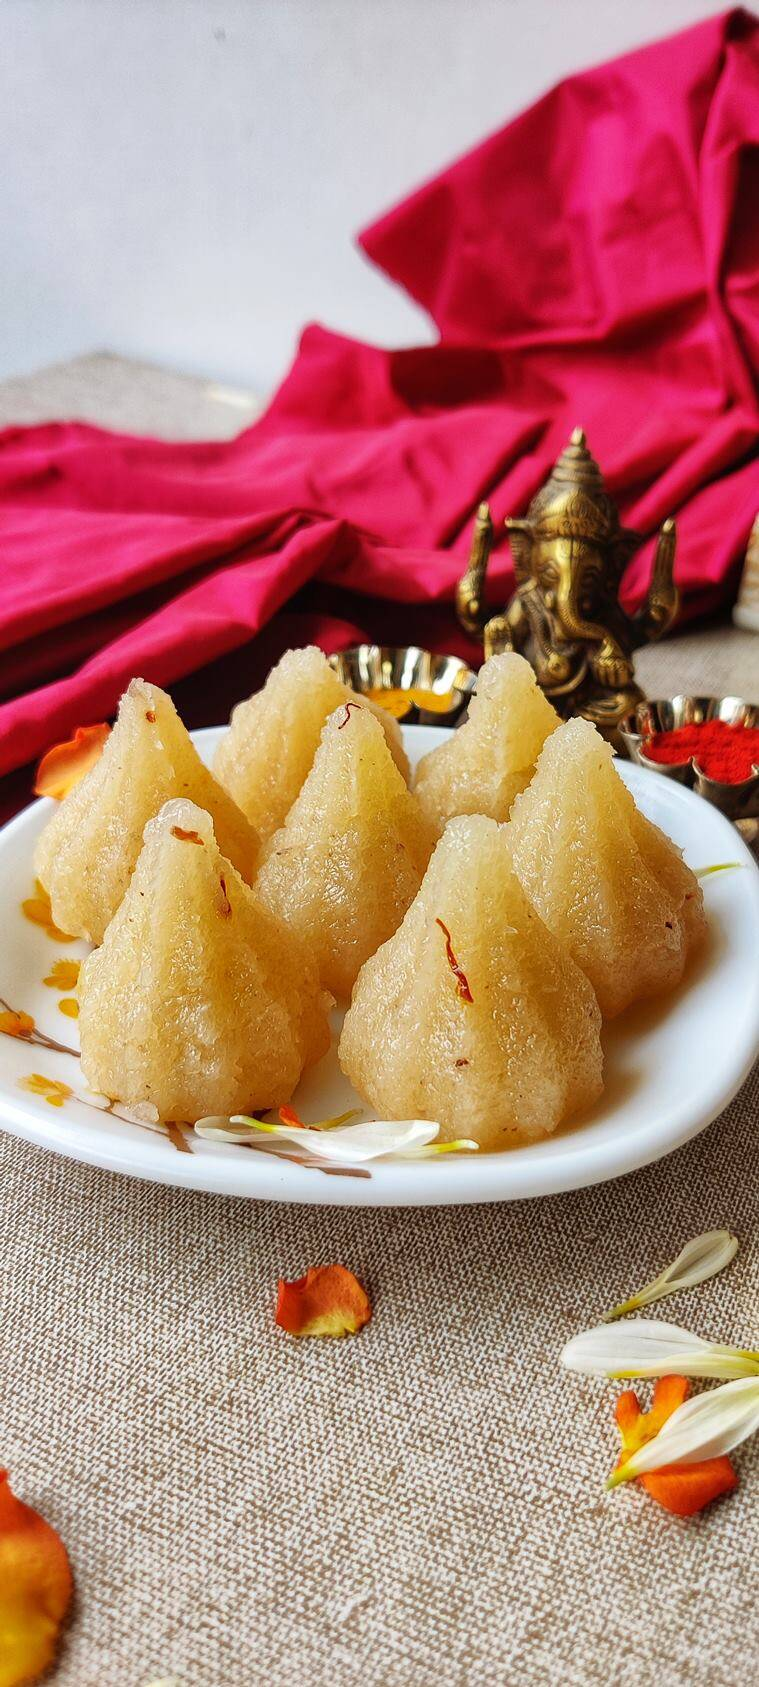 healthy food, healthy recipes, dessert recipes, healthy dessert recipes, sugar free dessert recipes, festivals, sweet dishes, healthy sweet dishes to make at home, indian express news